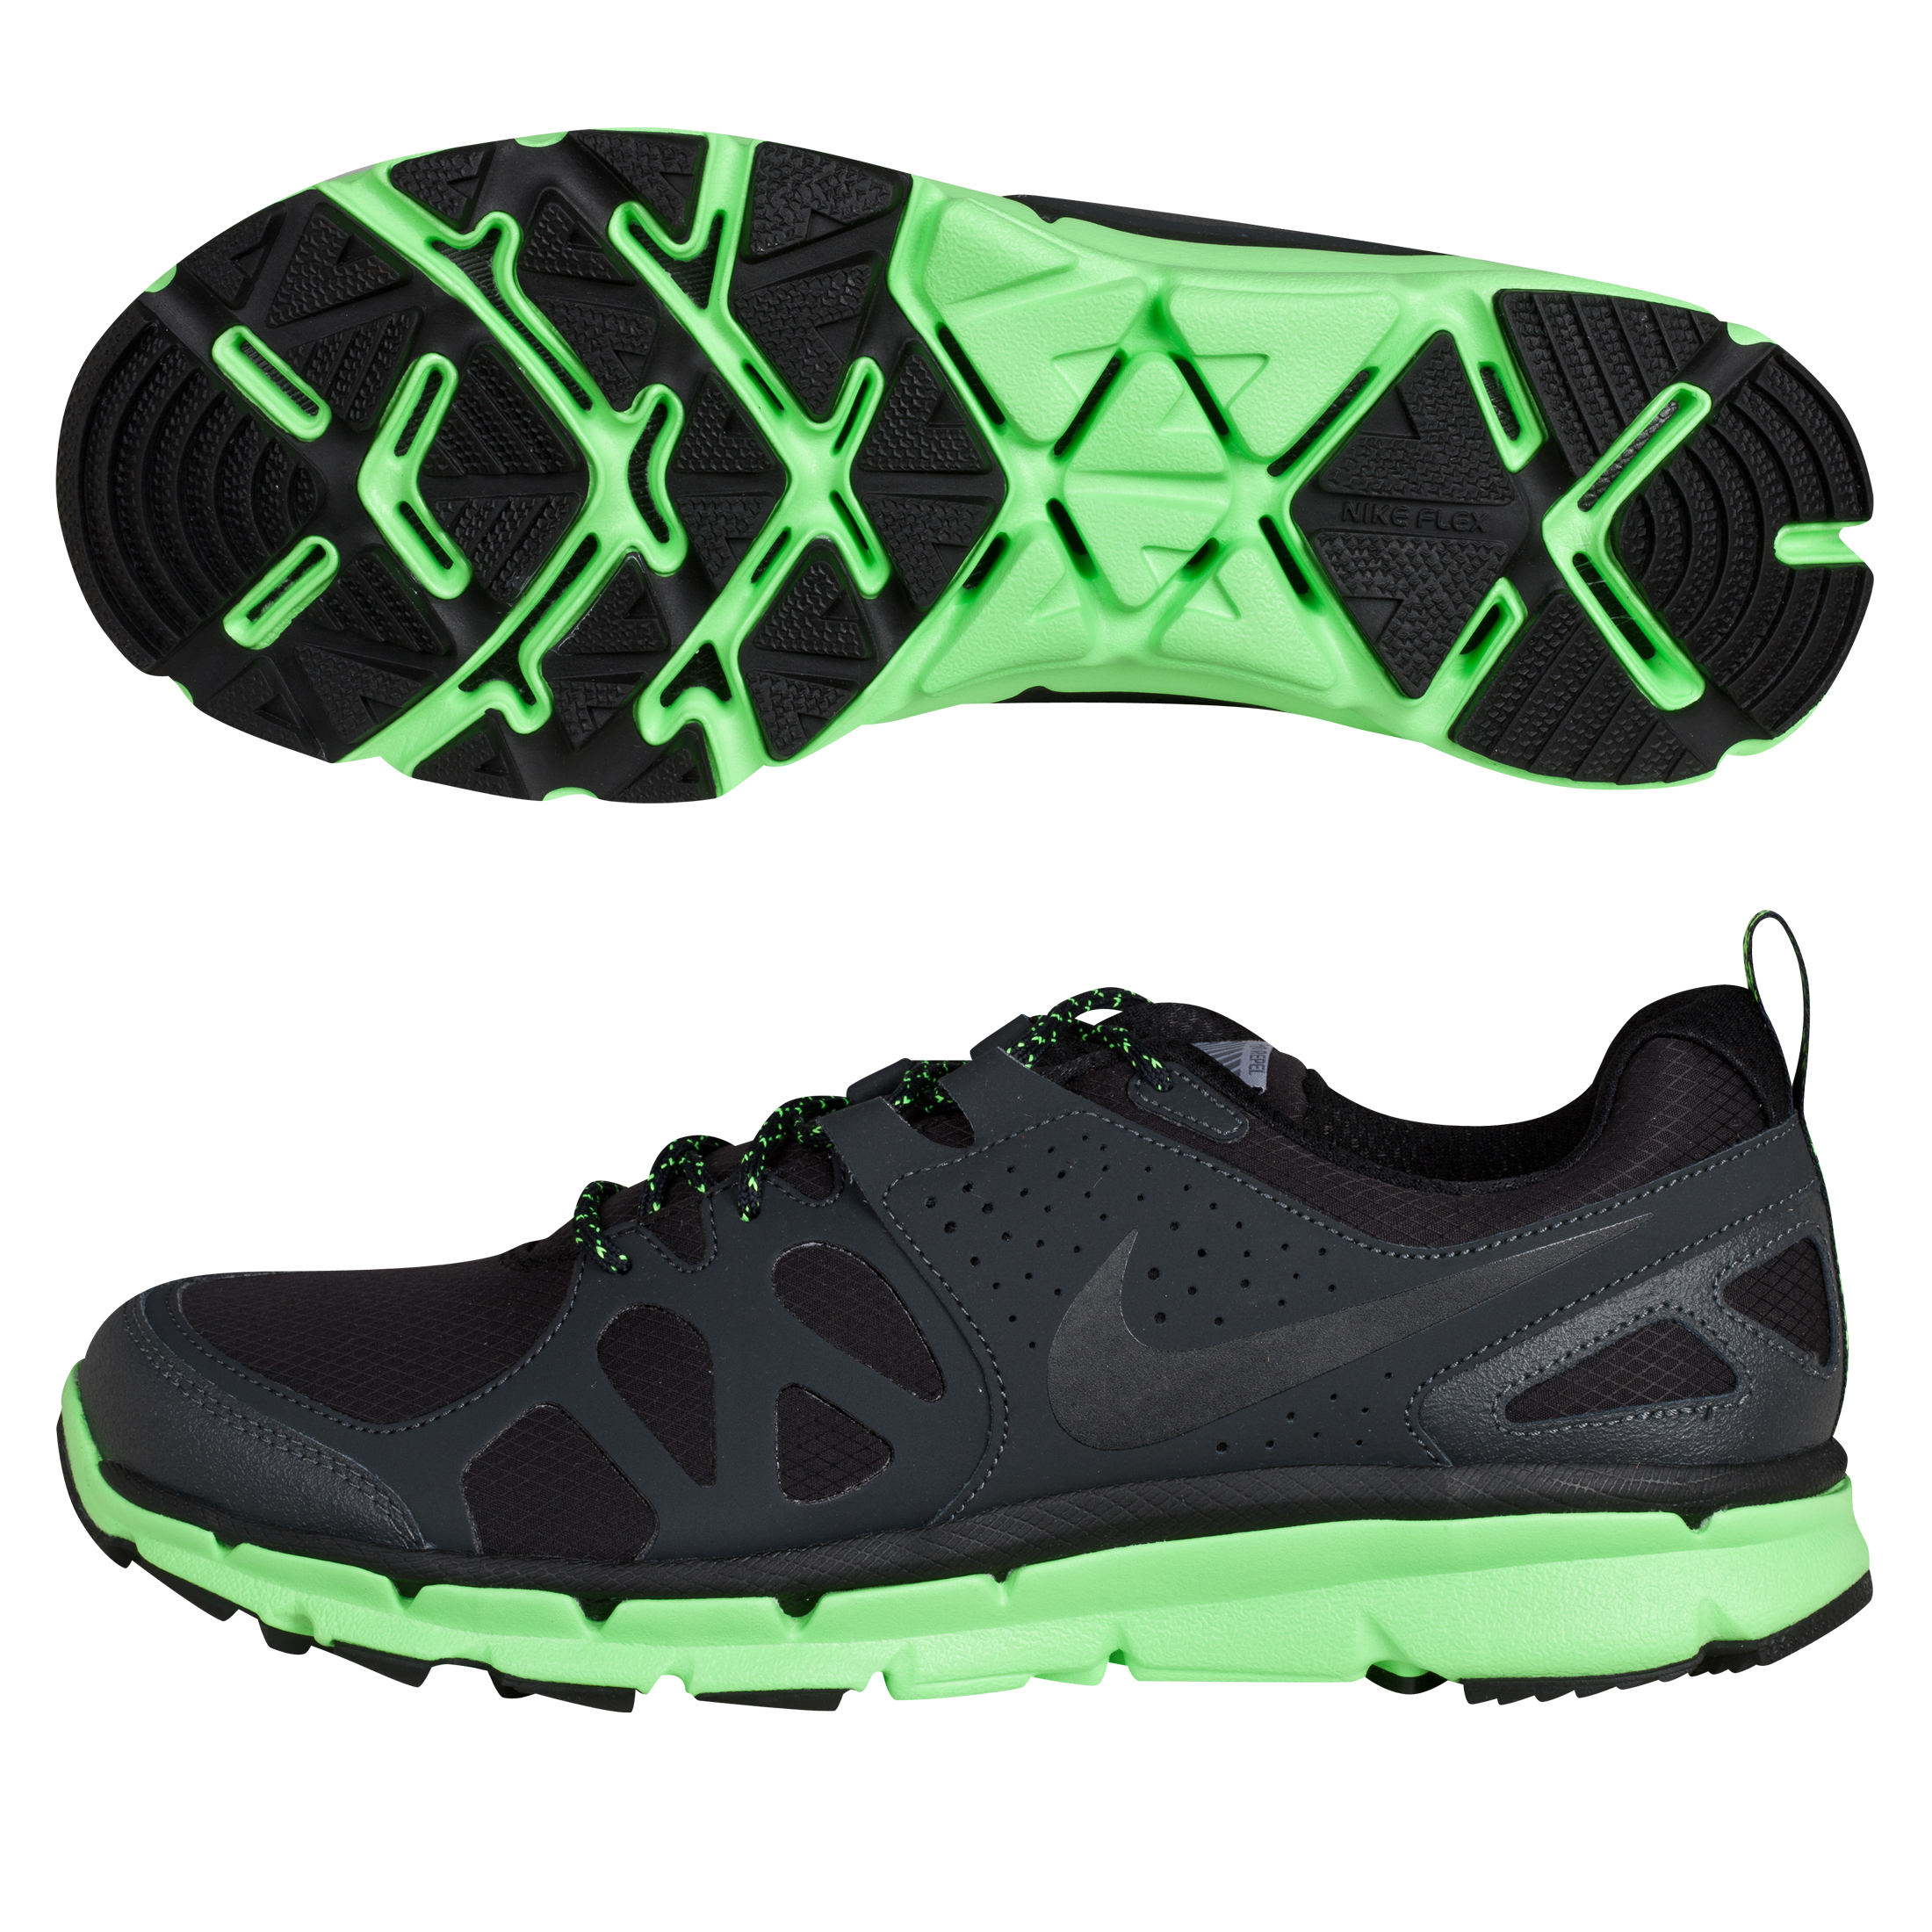 Nike Flex Trail Shield Trainers - Black/Anthracite/Electric Green